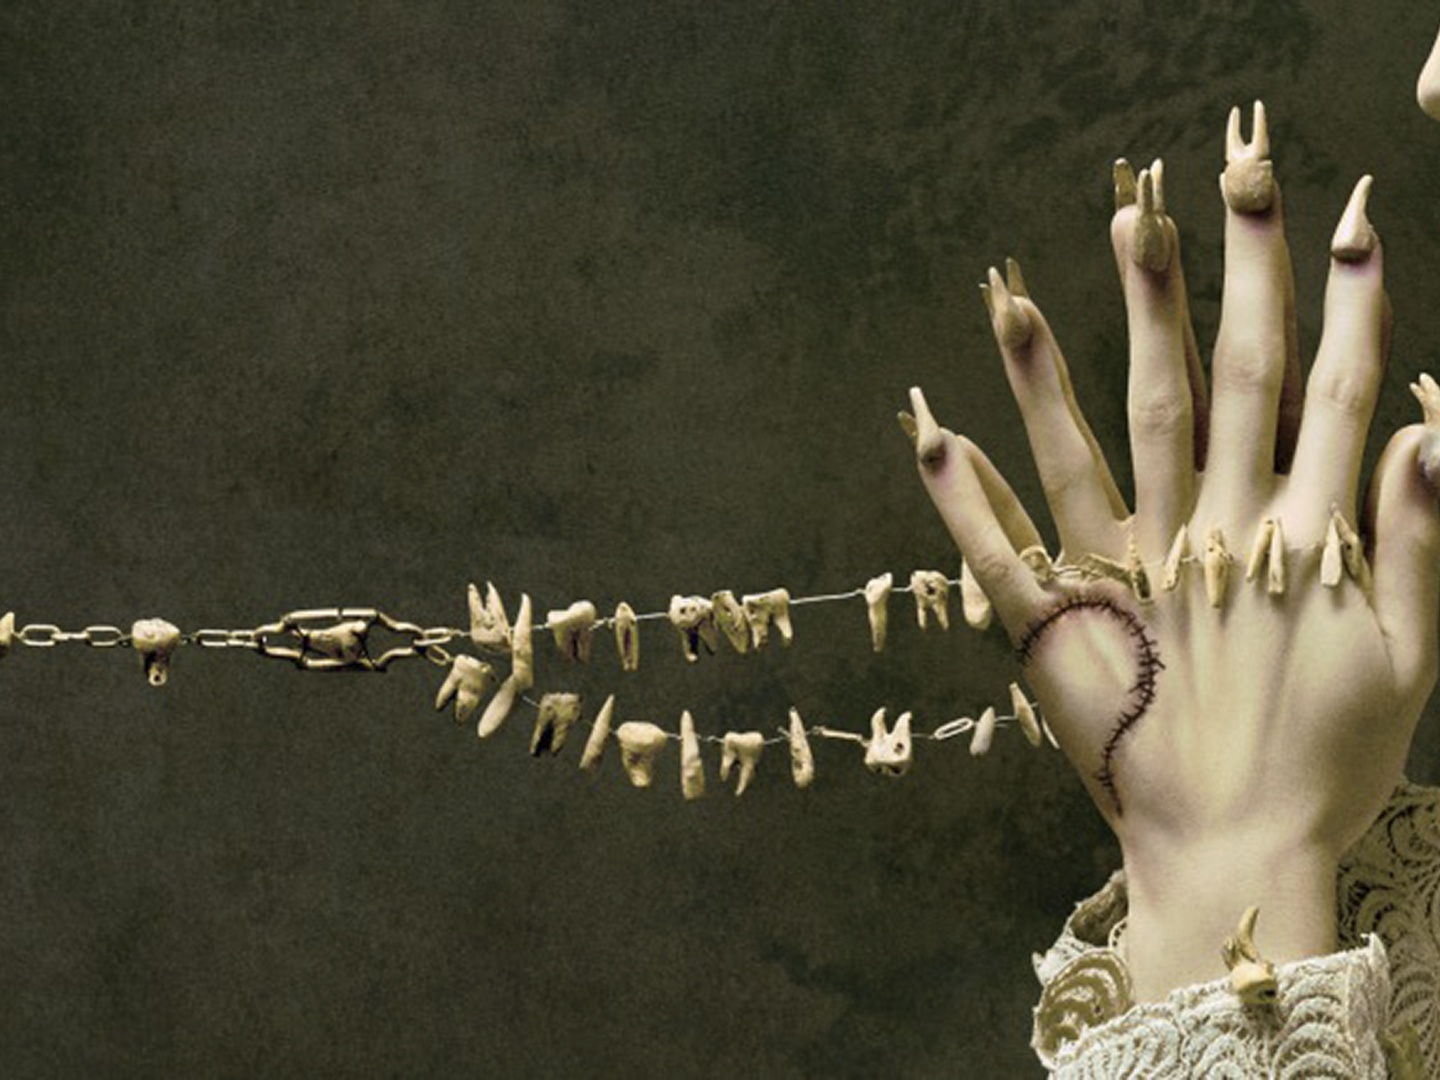 Image for American Horror Story - Roanoke payoff billboard